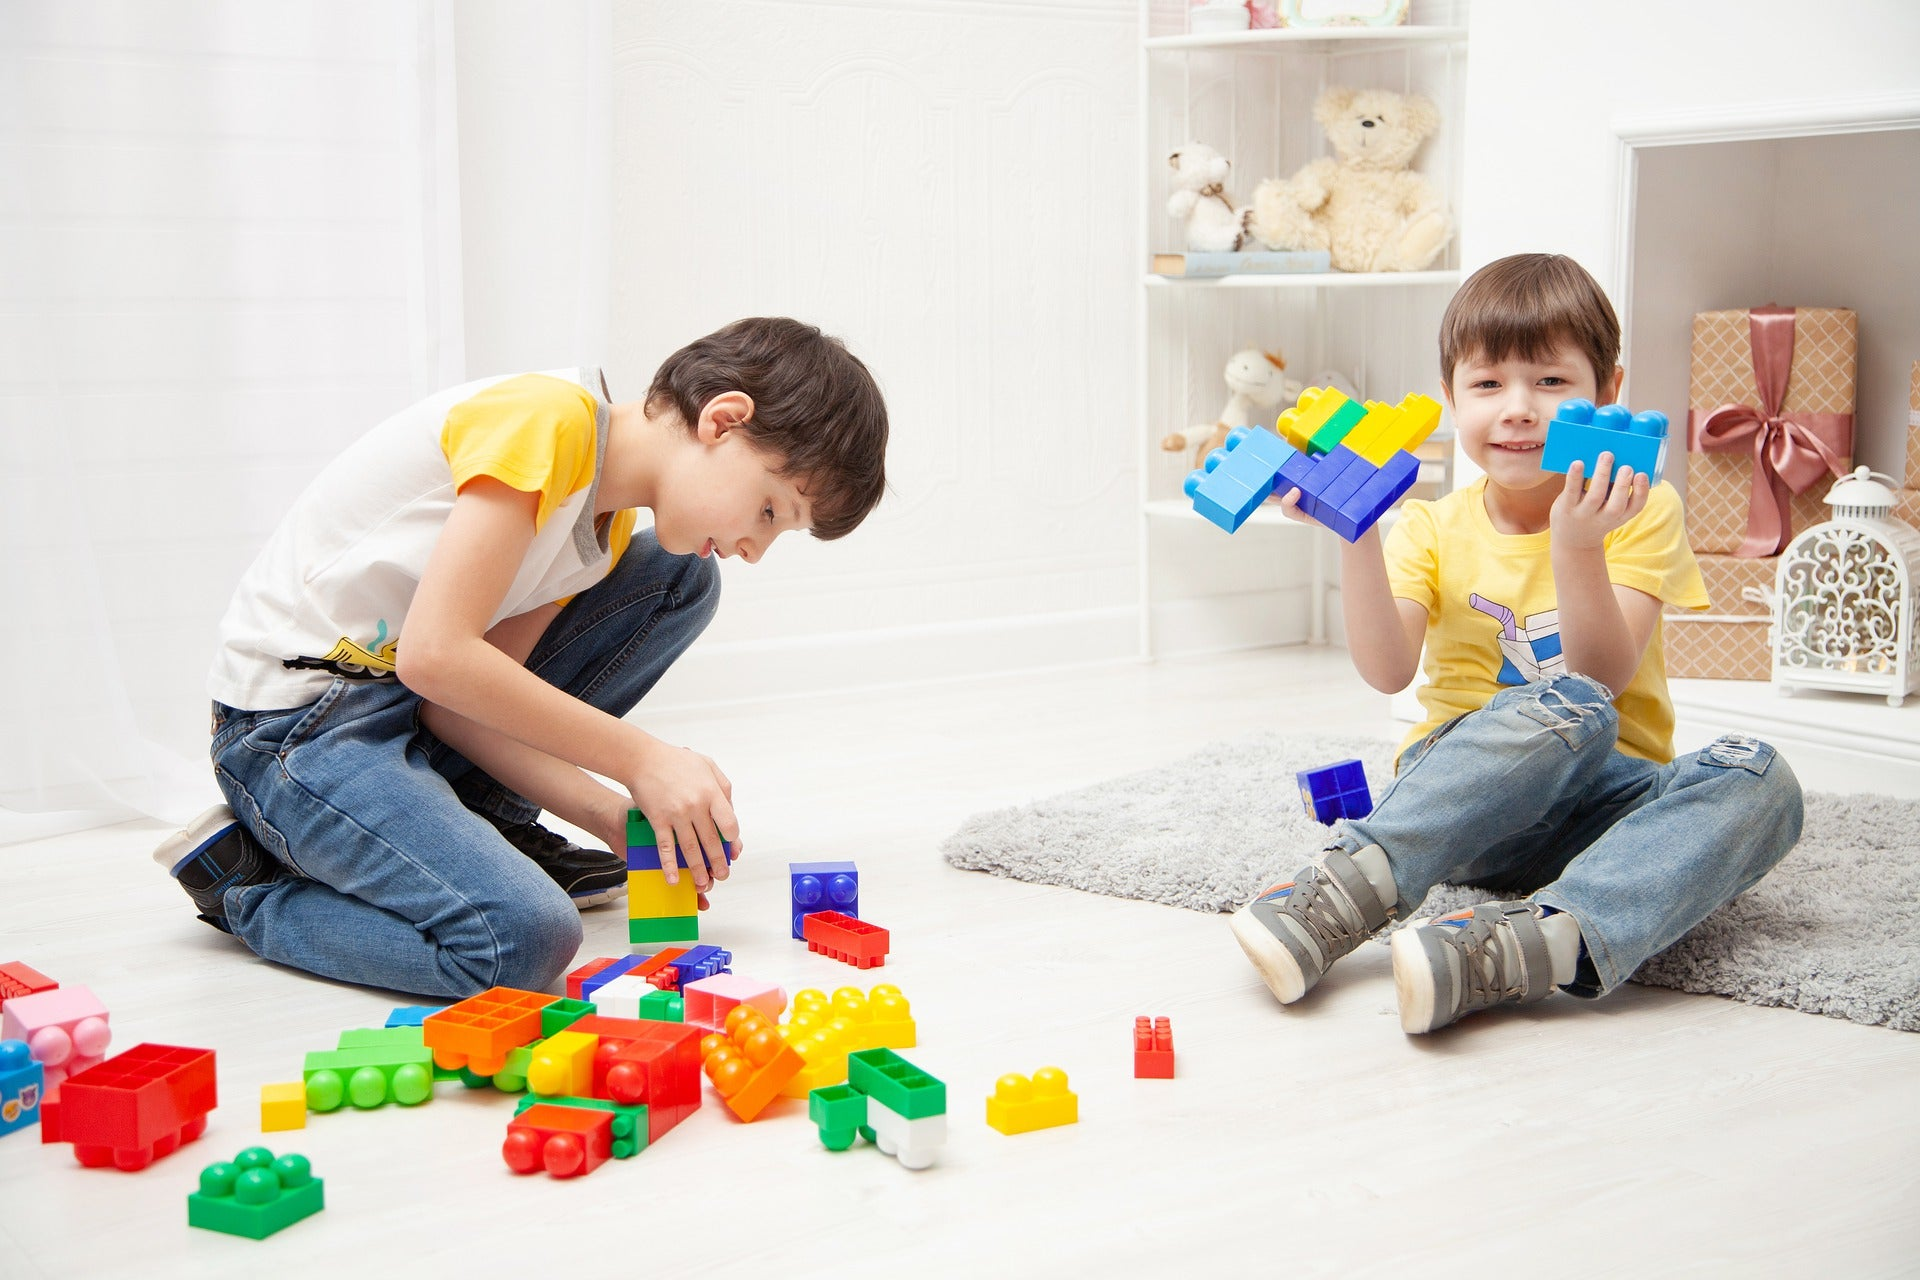 two boys playing colorful blocks